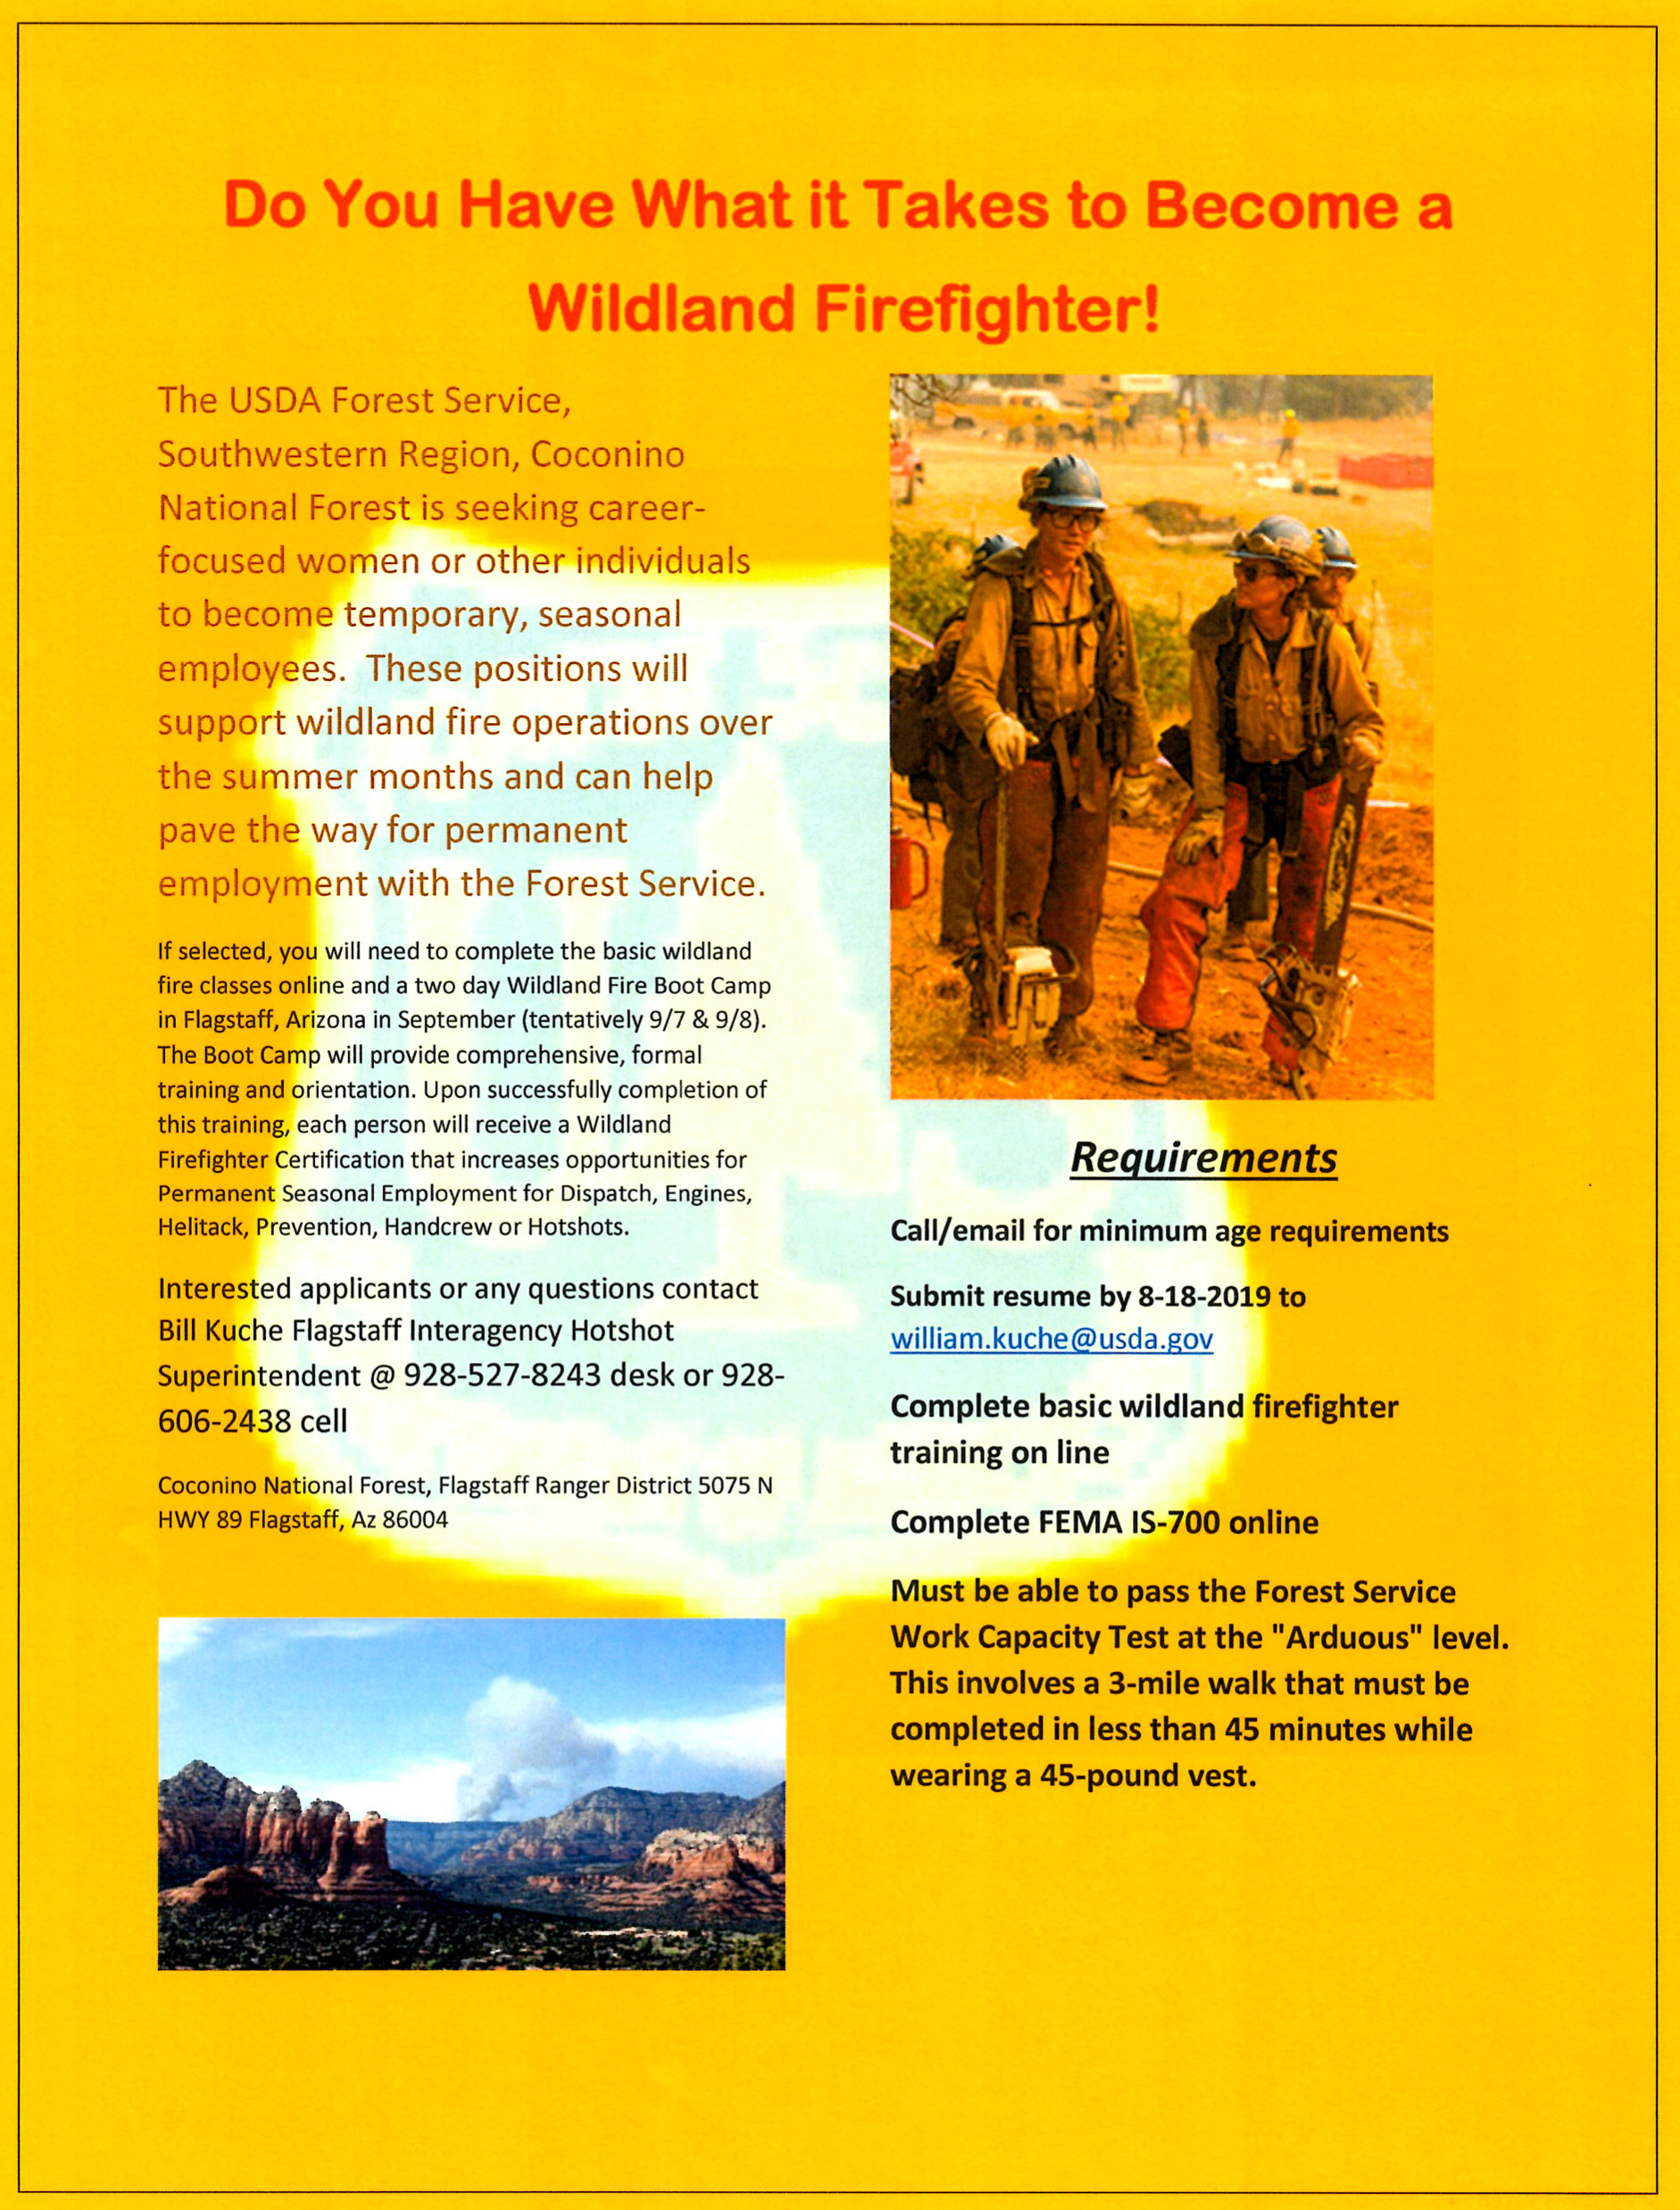 Do you have what it takes to become a wildland fire fighter